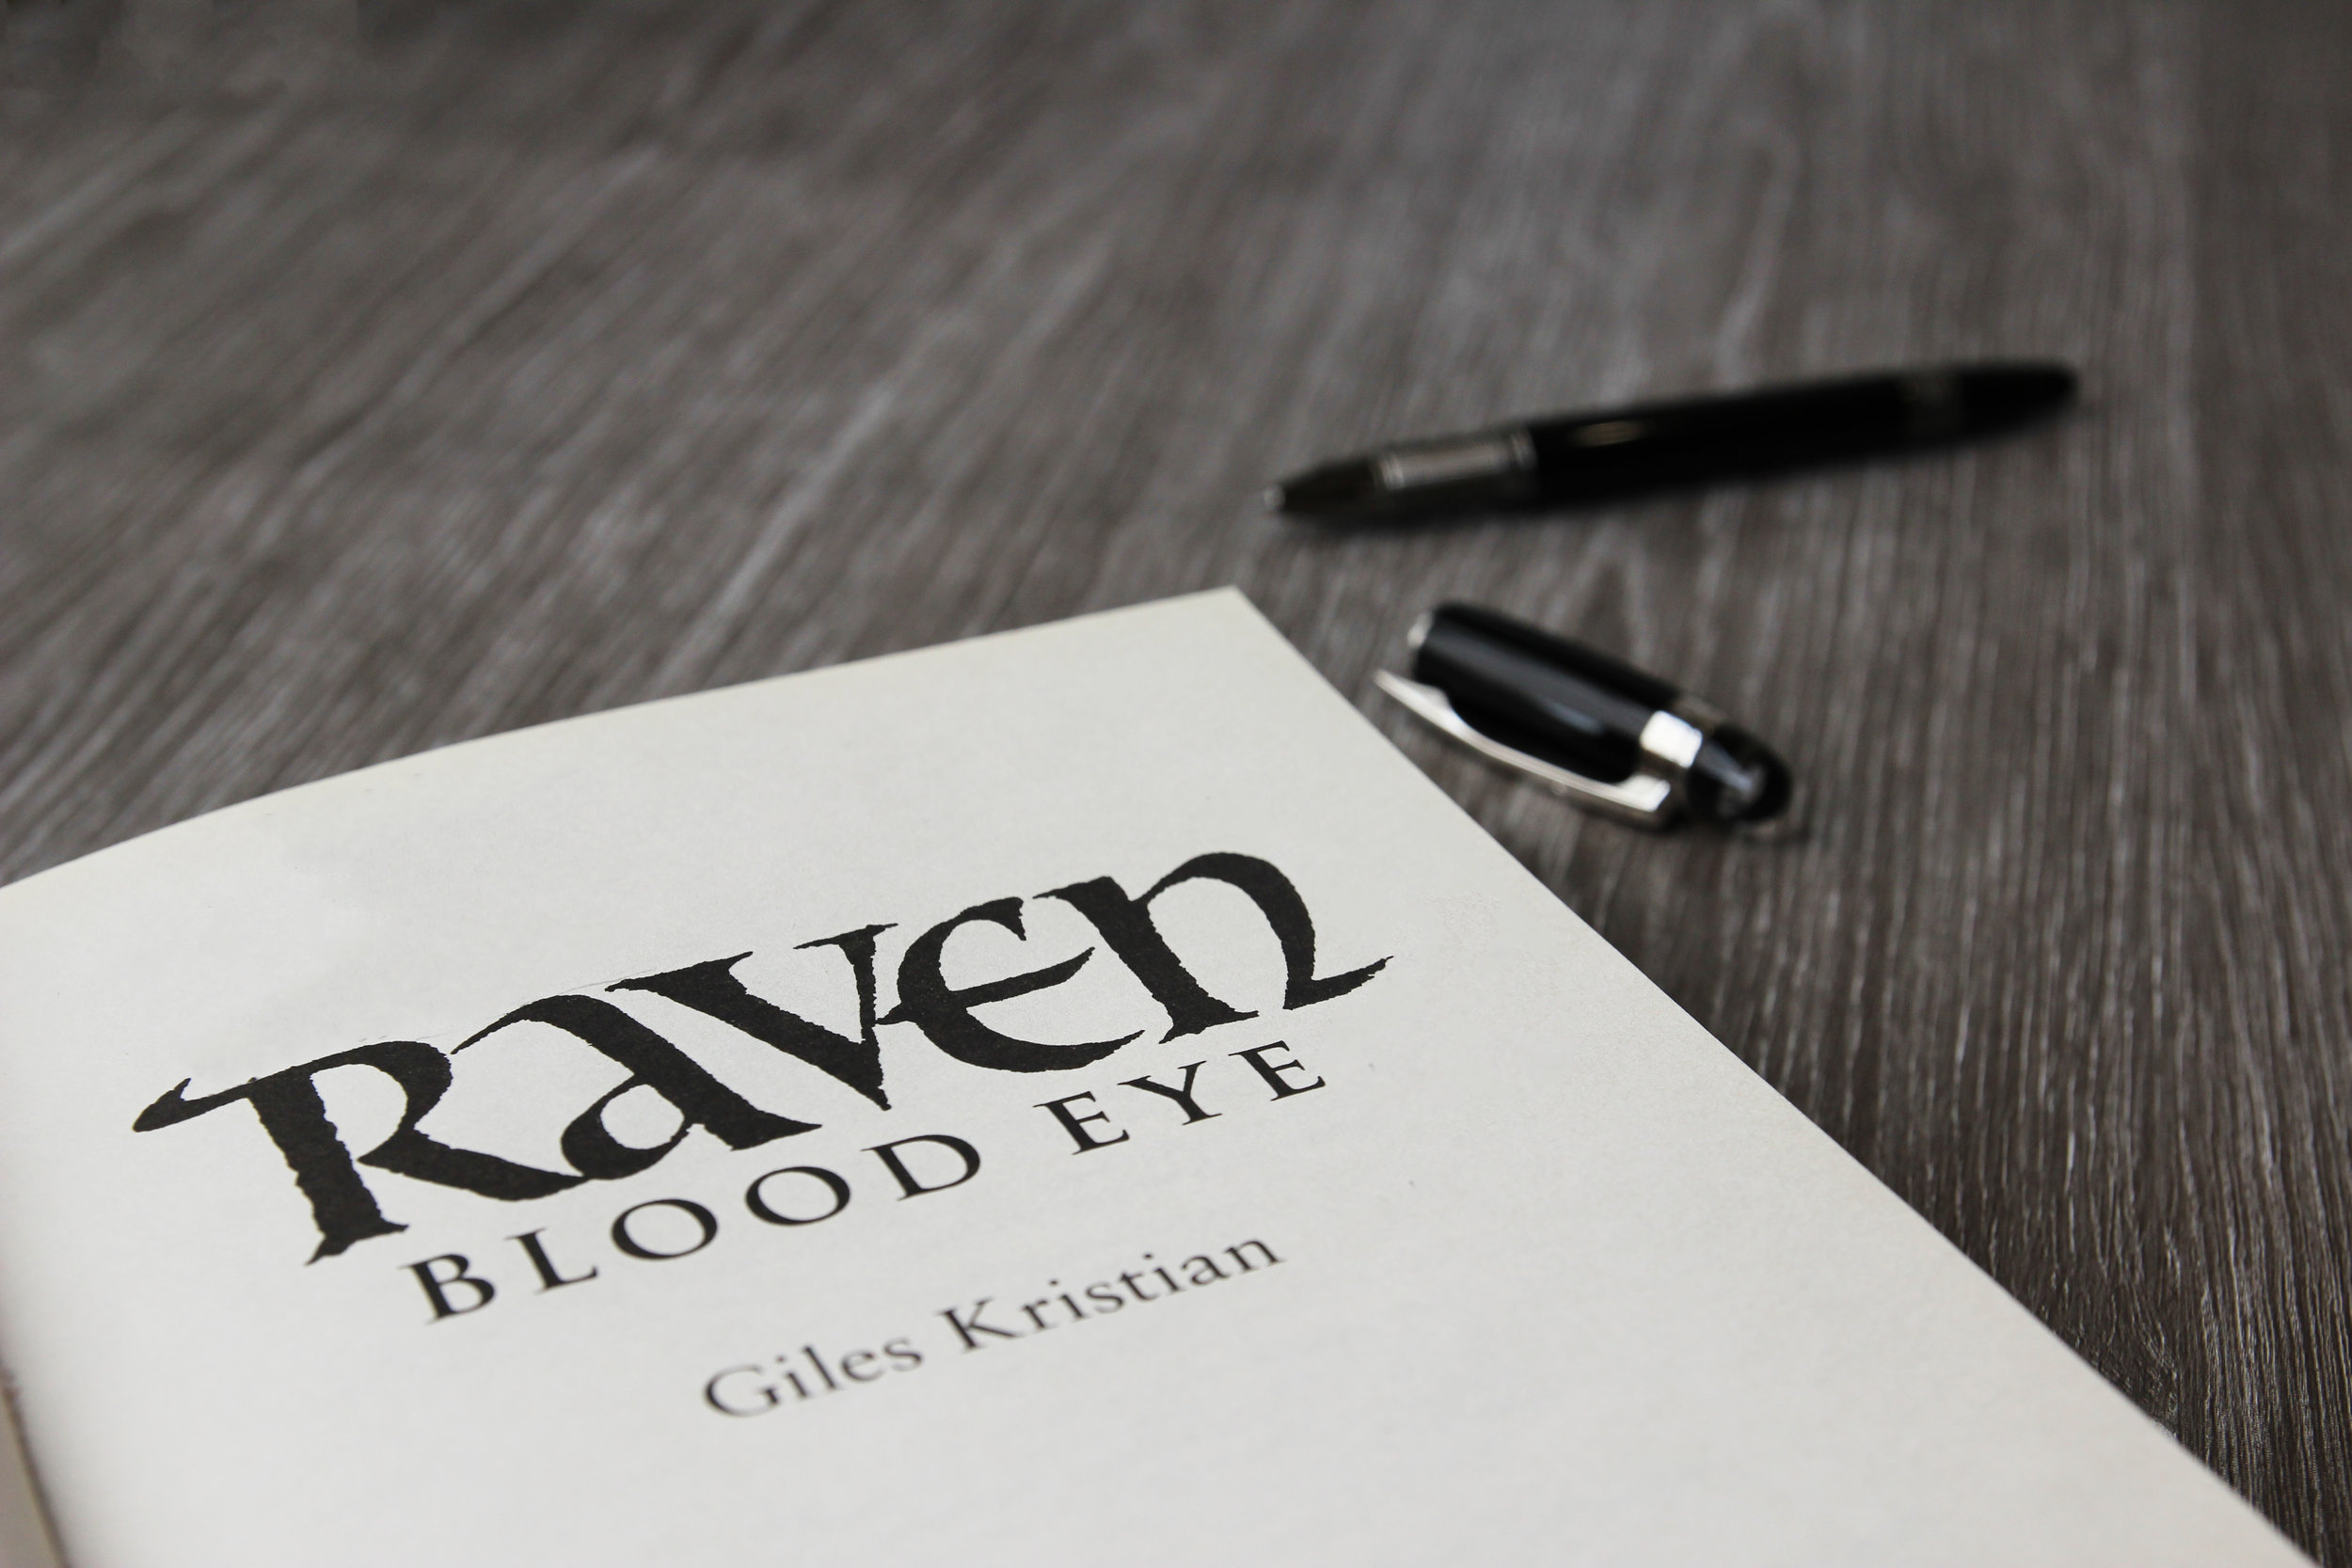 Signed copy of Raven Blood Eye by Giles Kristian